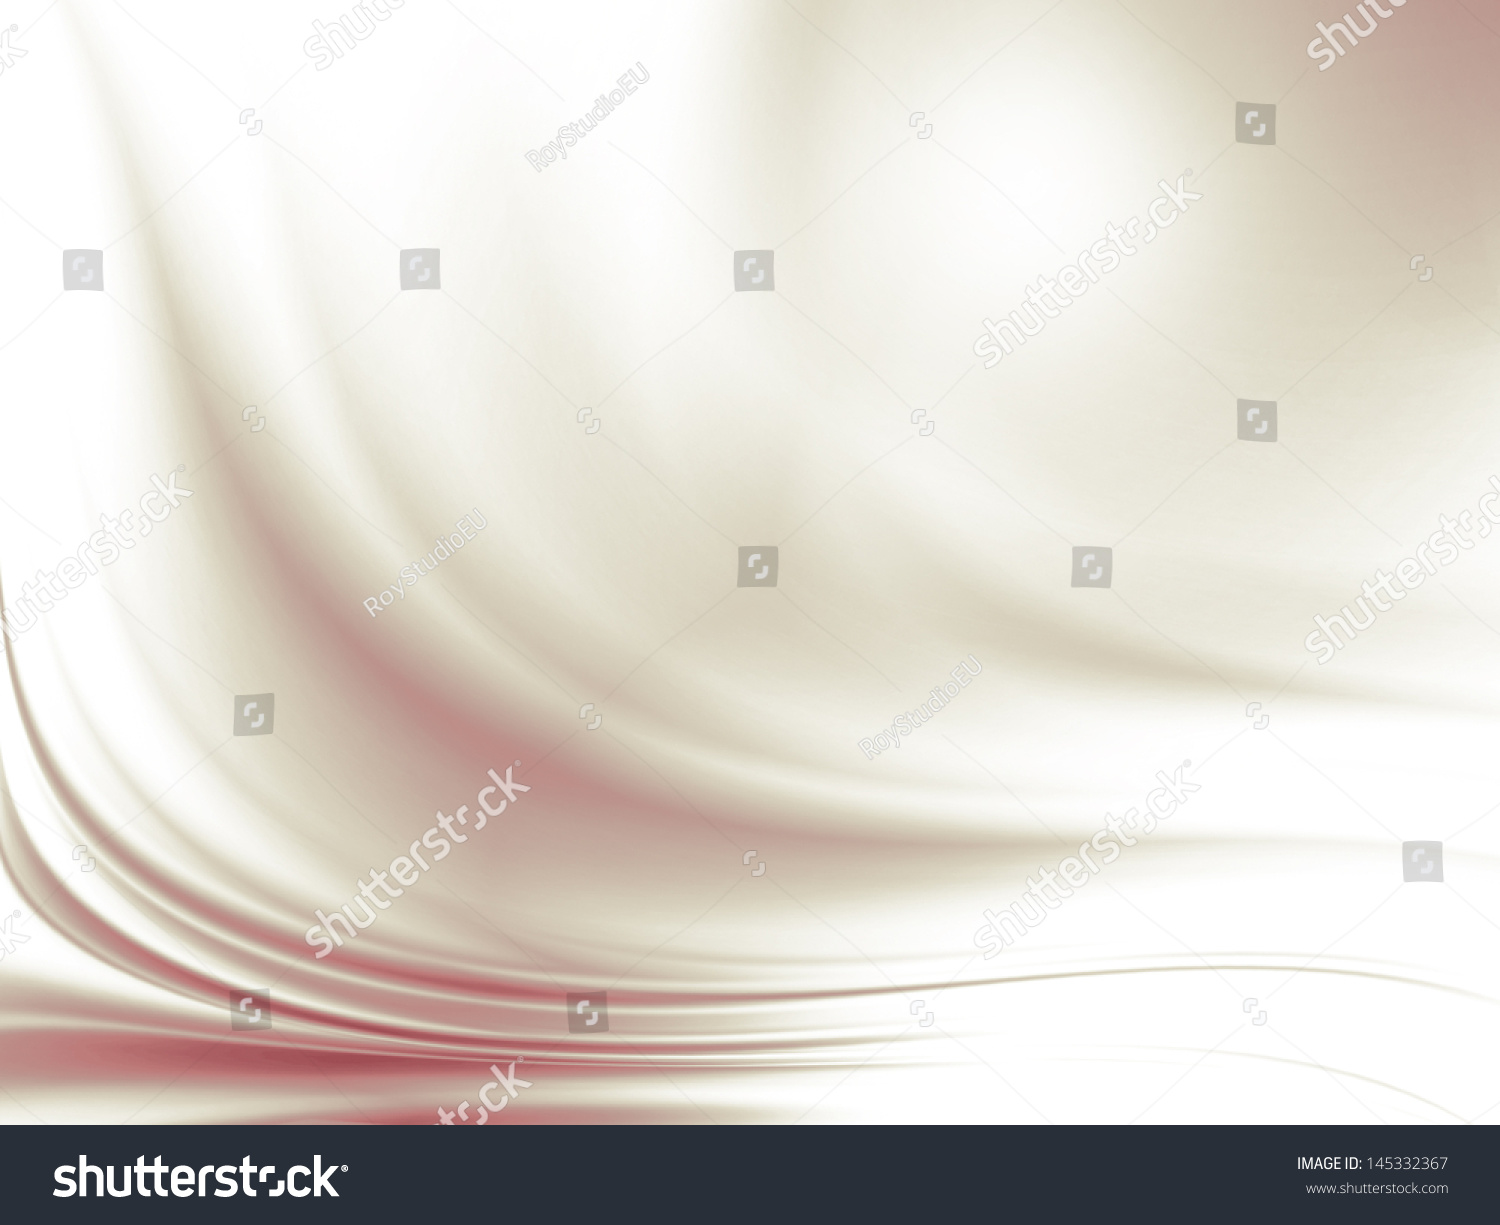 Bright smooth white marble texture background for decorative wall - Bright Abstract Background Business Card Greeting Stock